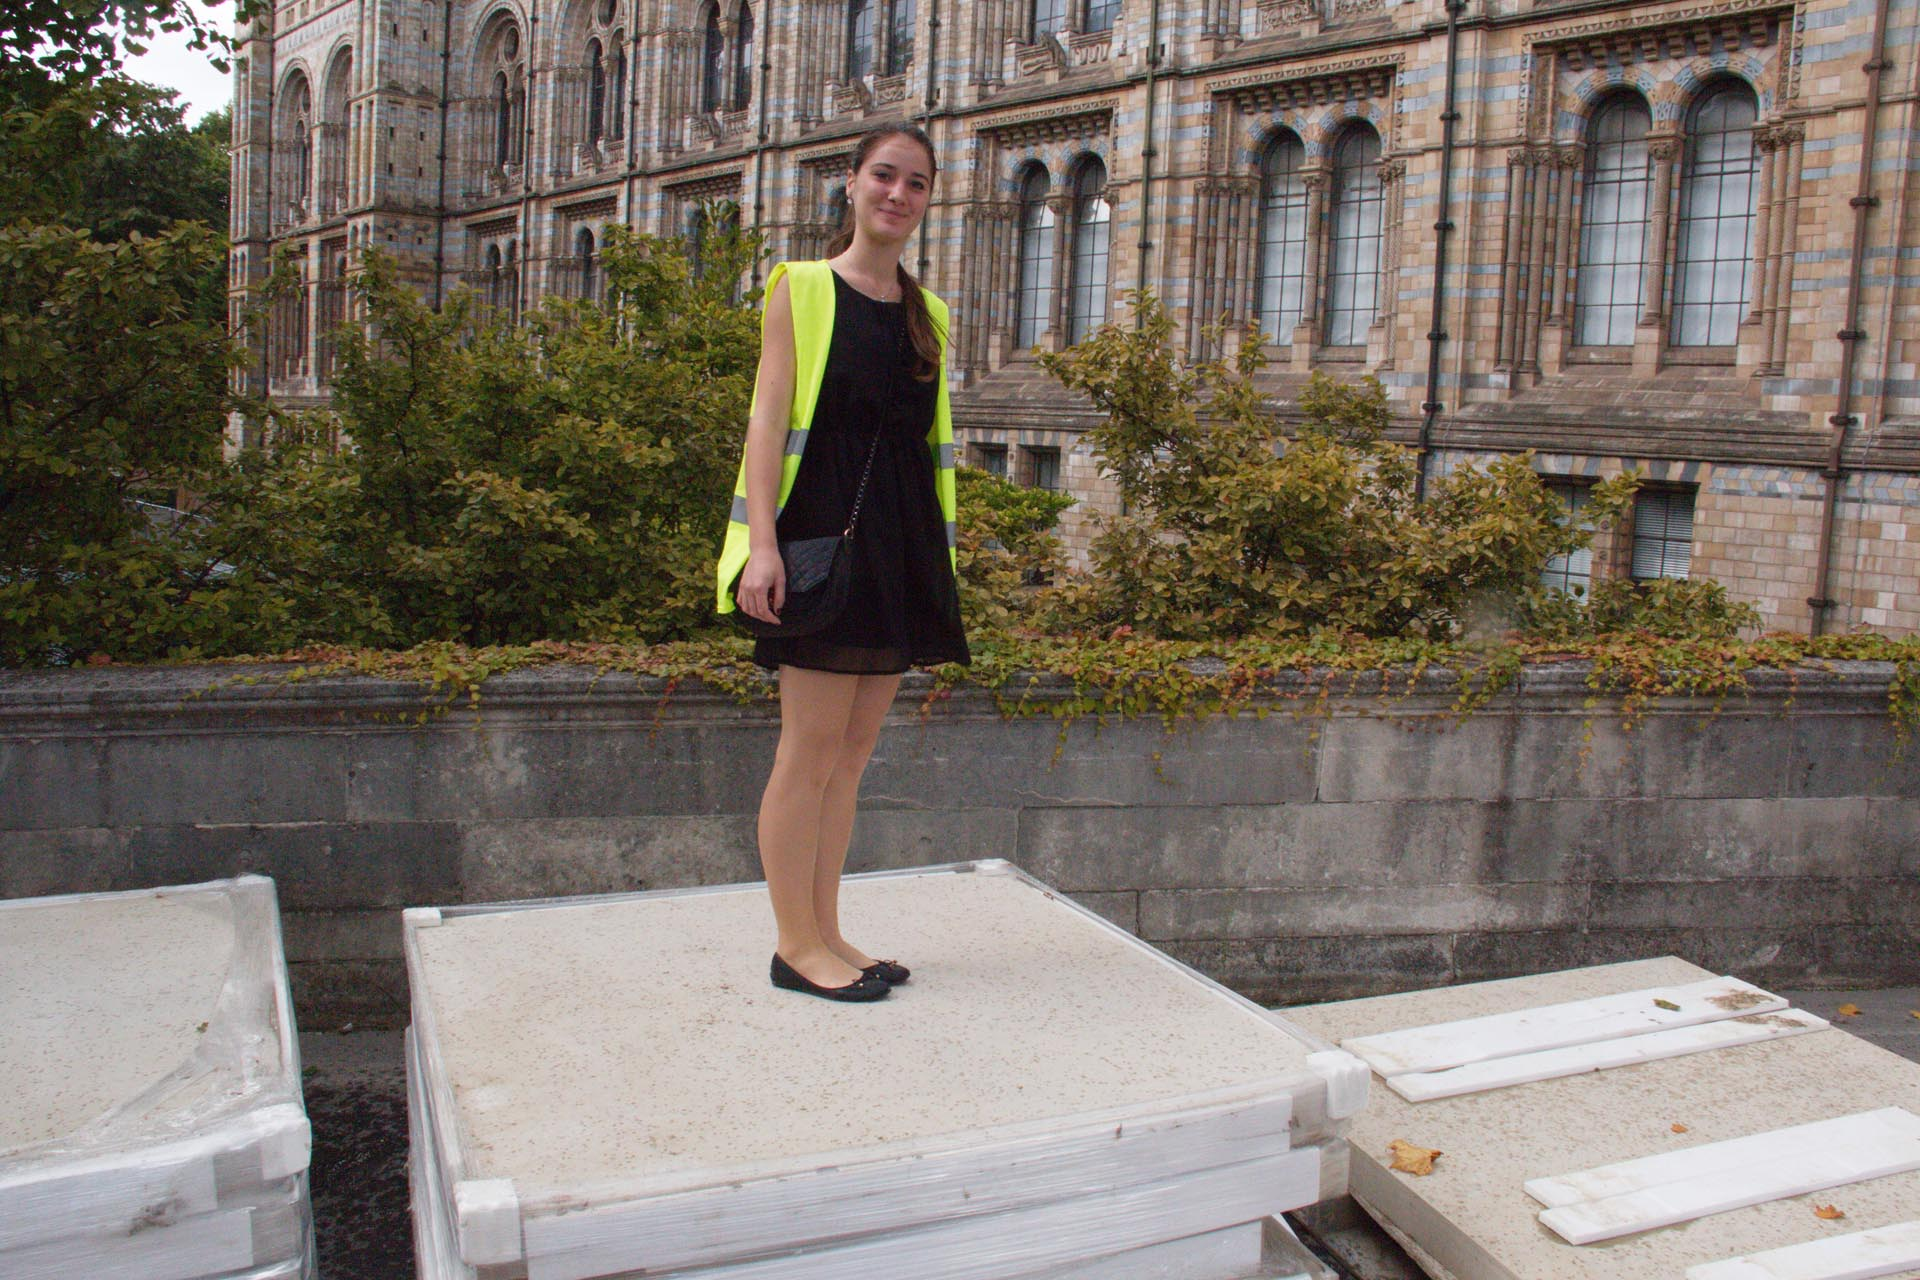 Pavla on the huge York stone slabs soon to grace the museum entrance